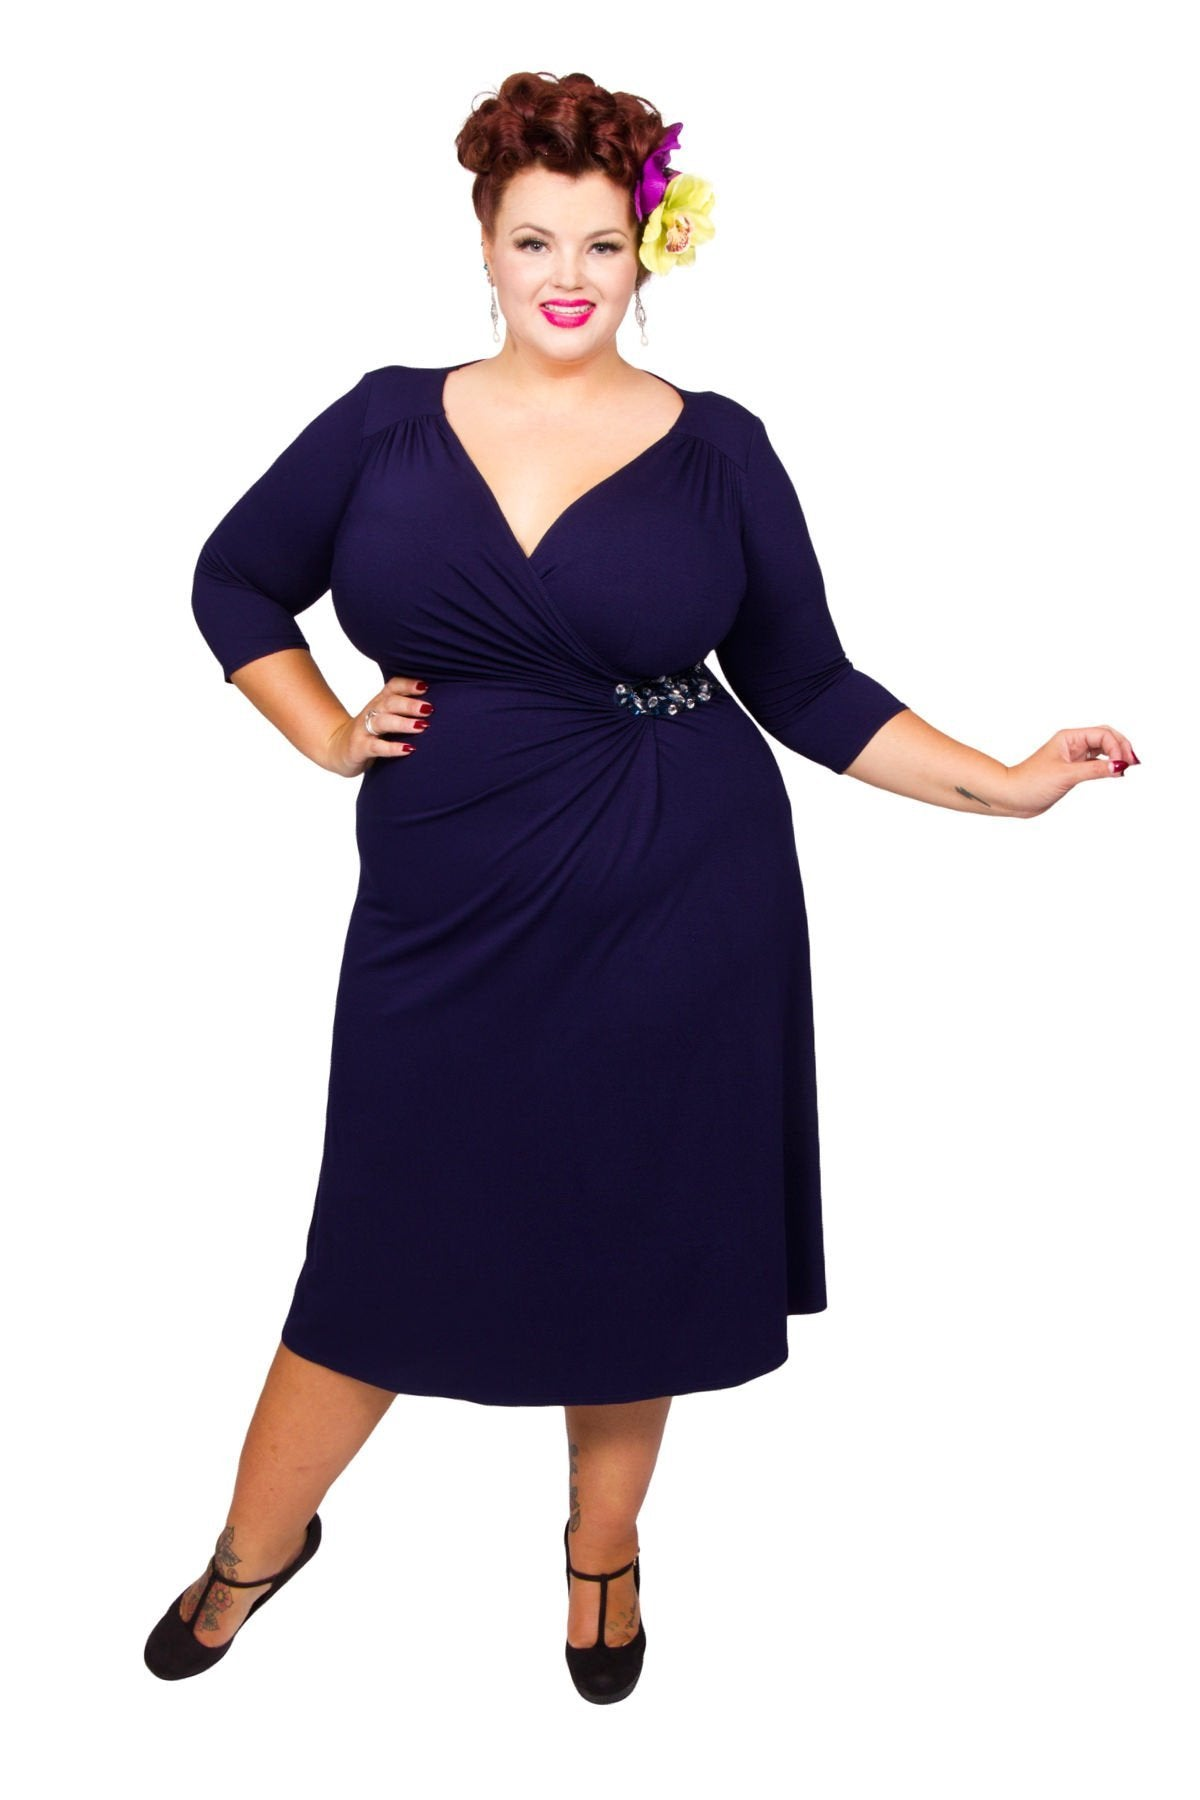 1940s Plus Size Dresses | Swing Dress, Tea Dress Side Beaded Jersey Dress - Midnight  14 £70.00 AT vintagedancer.com